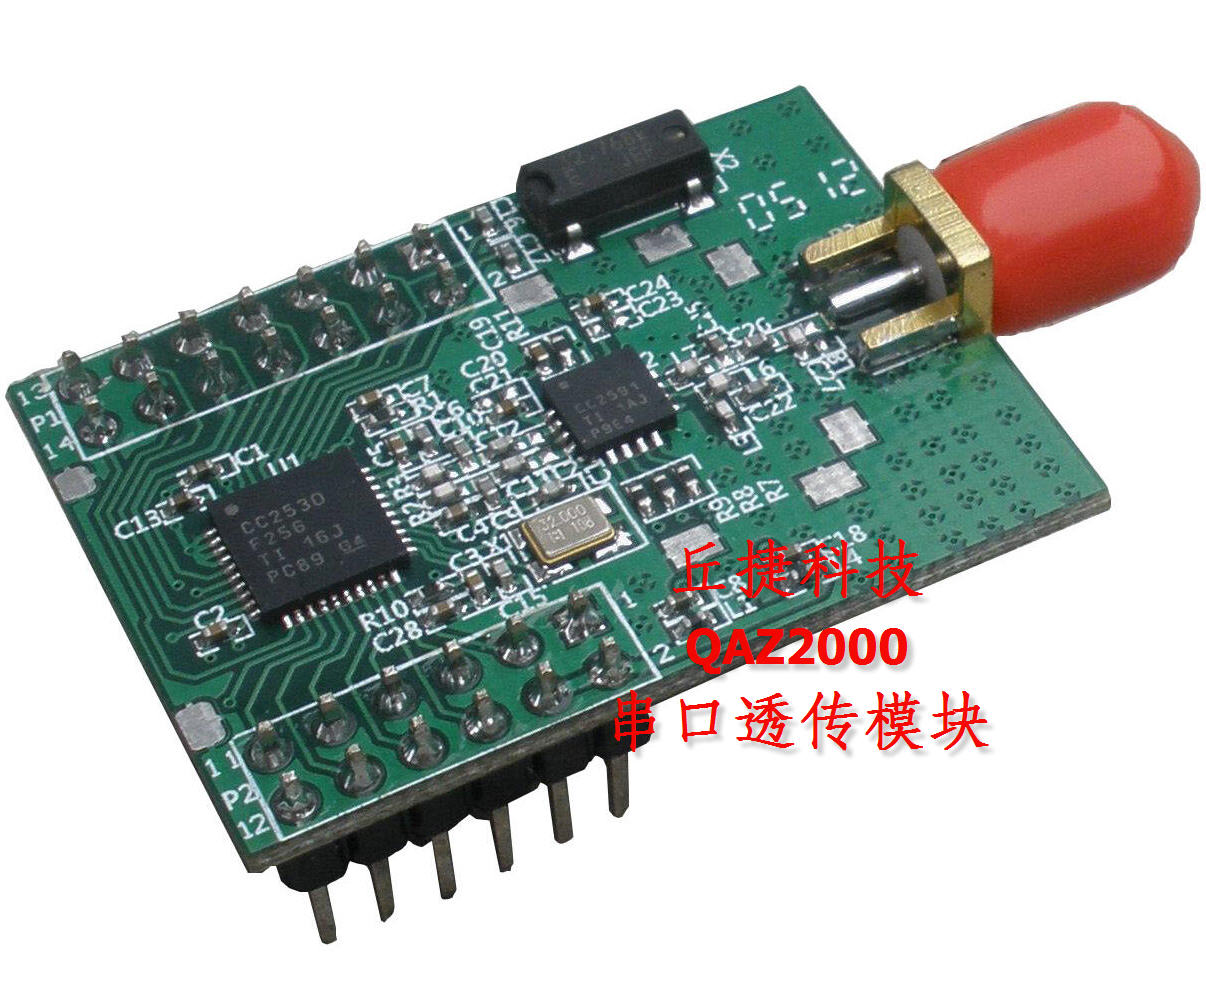 Serial to 1.6km ZigBee wireless module network transmission QAZ2000 CC2530 including antenna usb serial rs485 rs232 zigbee cc2530 pa remote wireless module